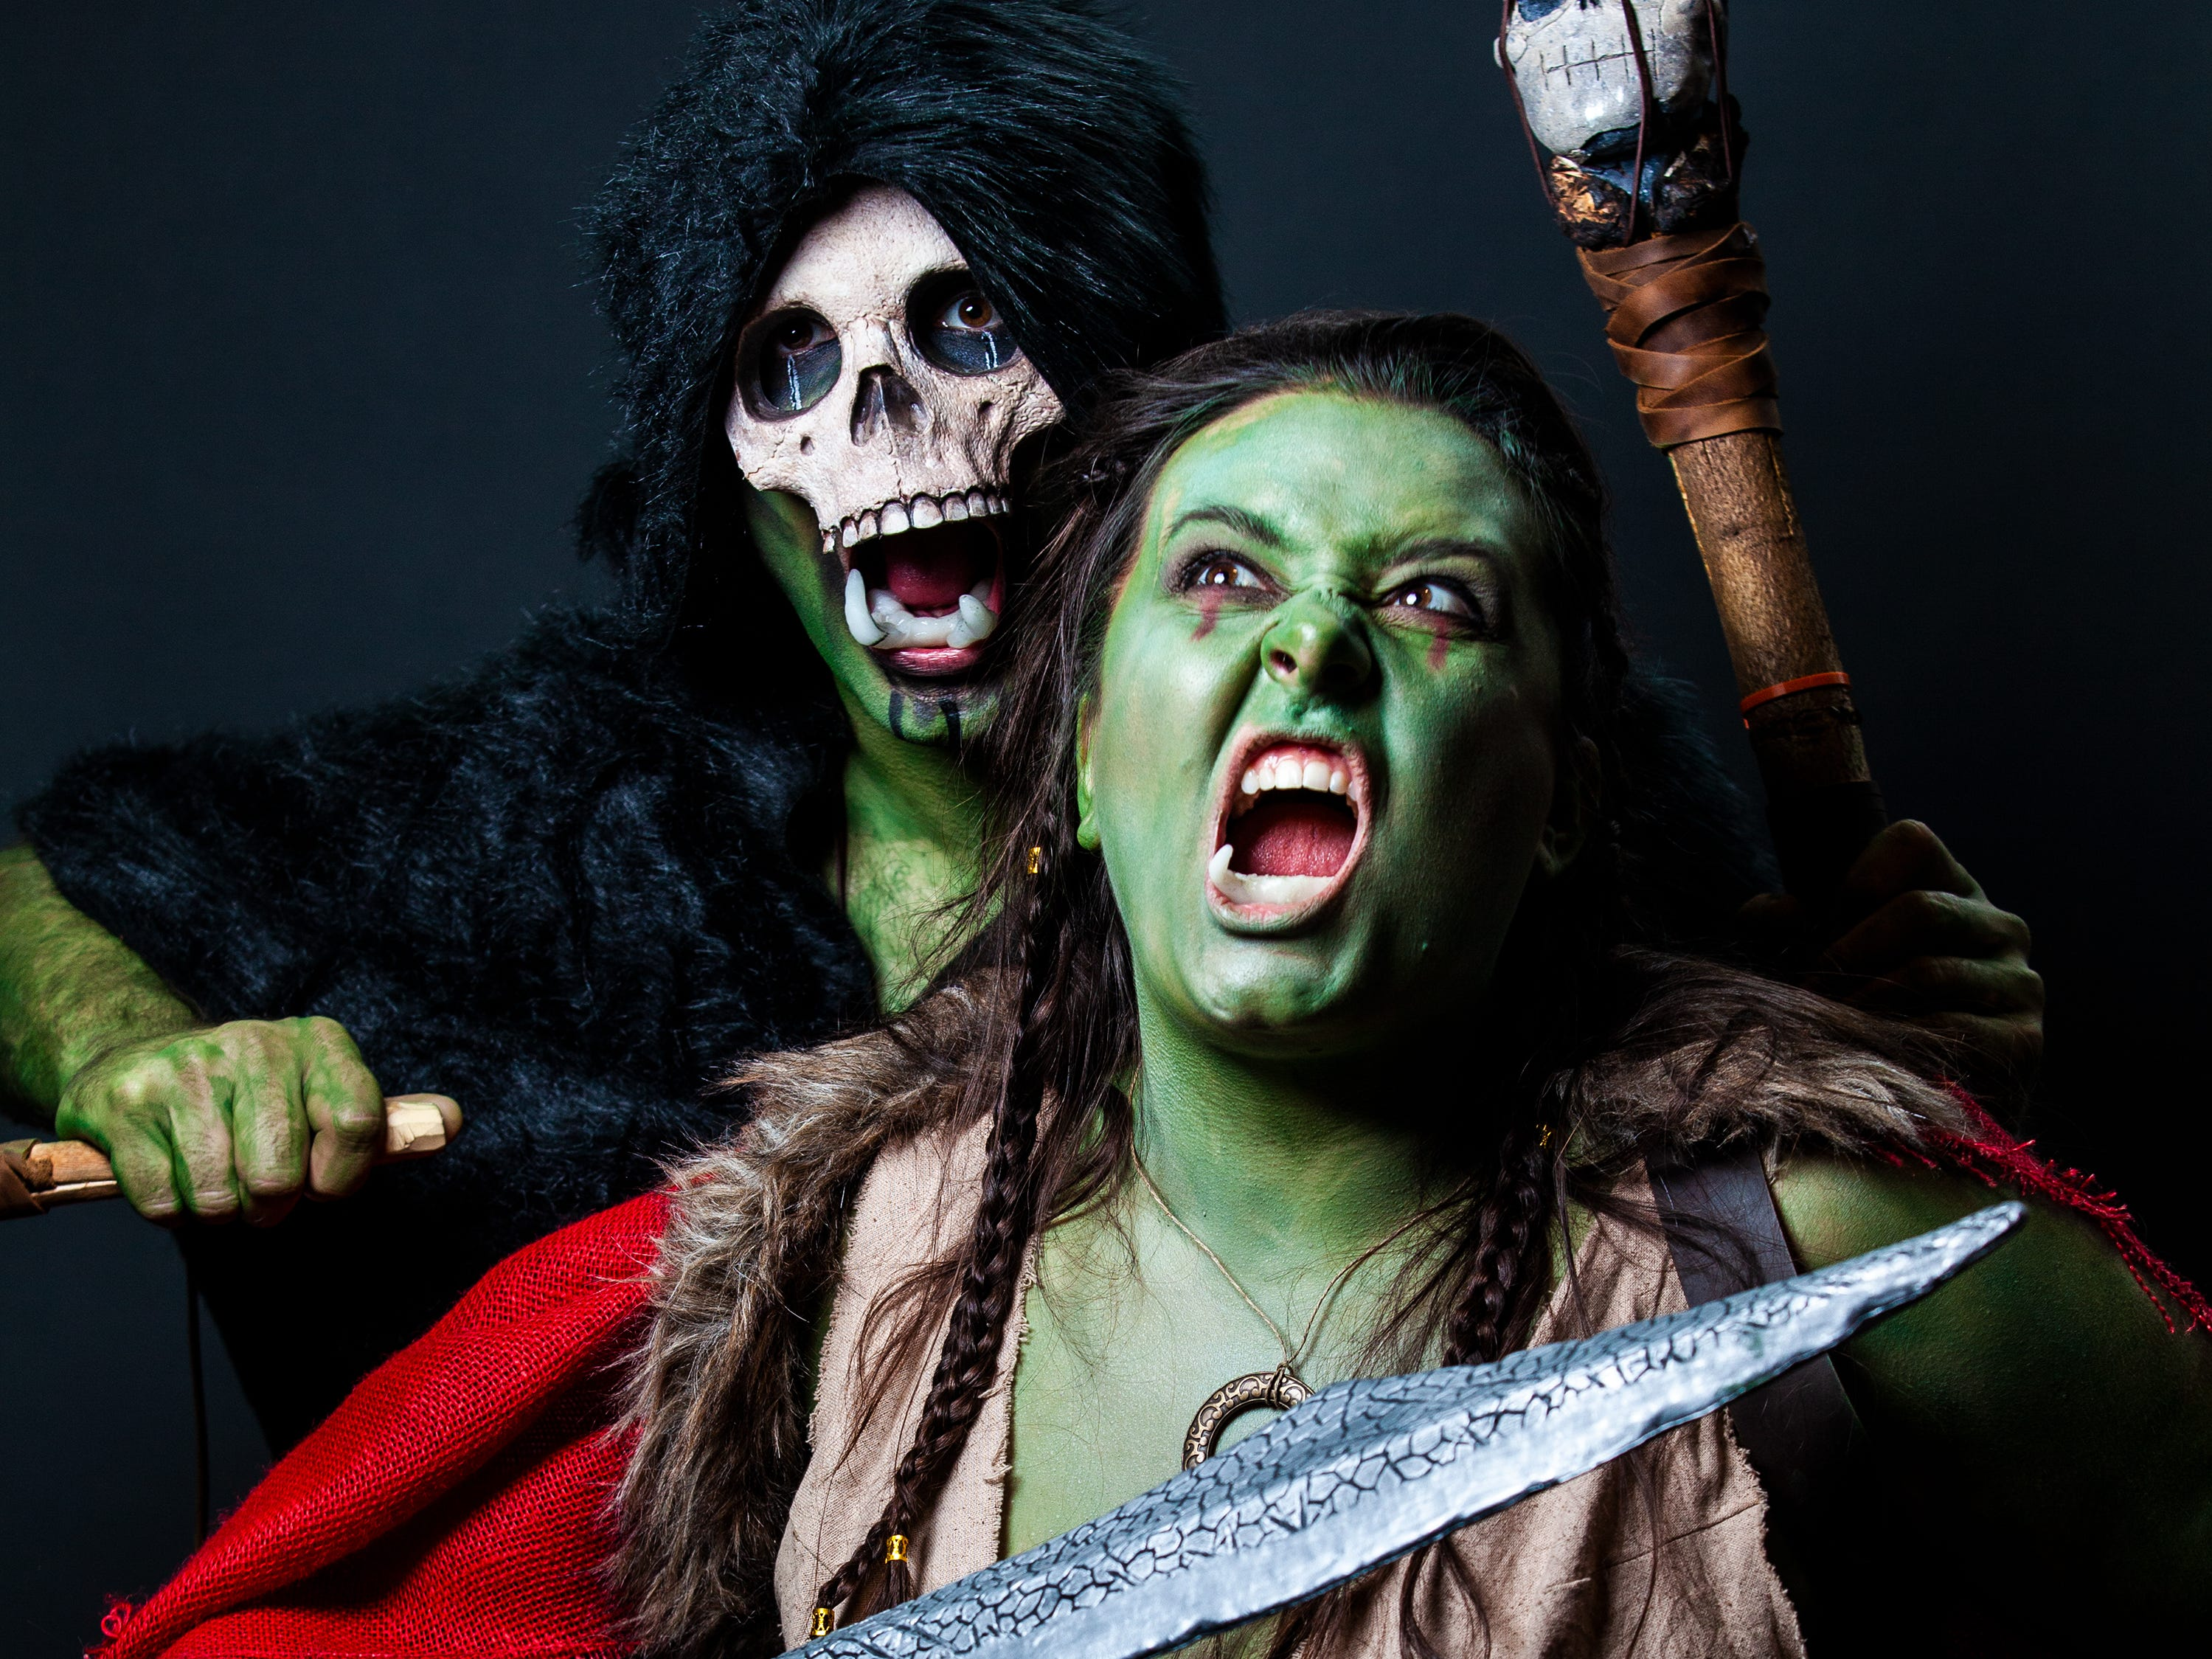 Amber and Brandon pose as Orcs for the Louisville Supercon at the Kentucky International Convention Center on Saturday, Dec. 1, 2018.